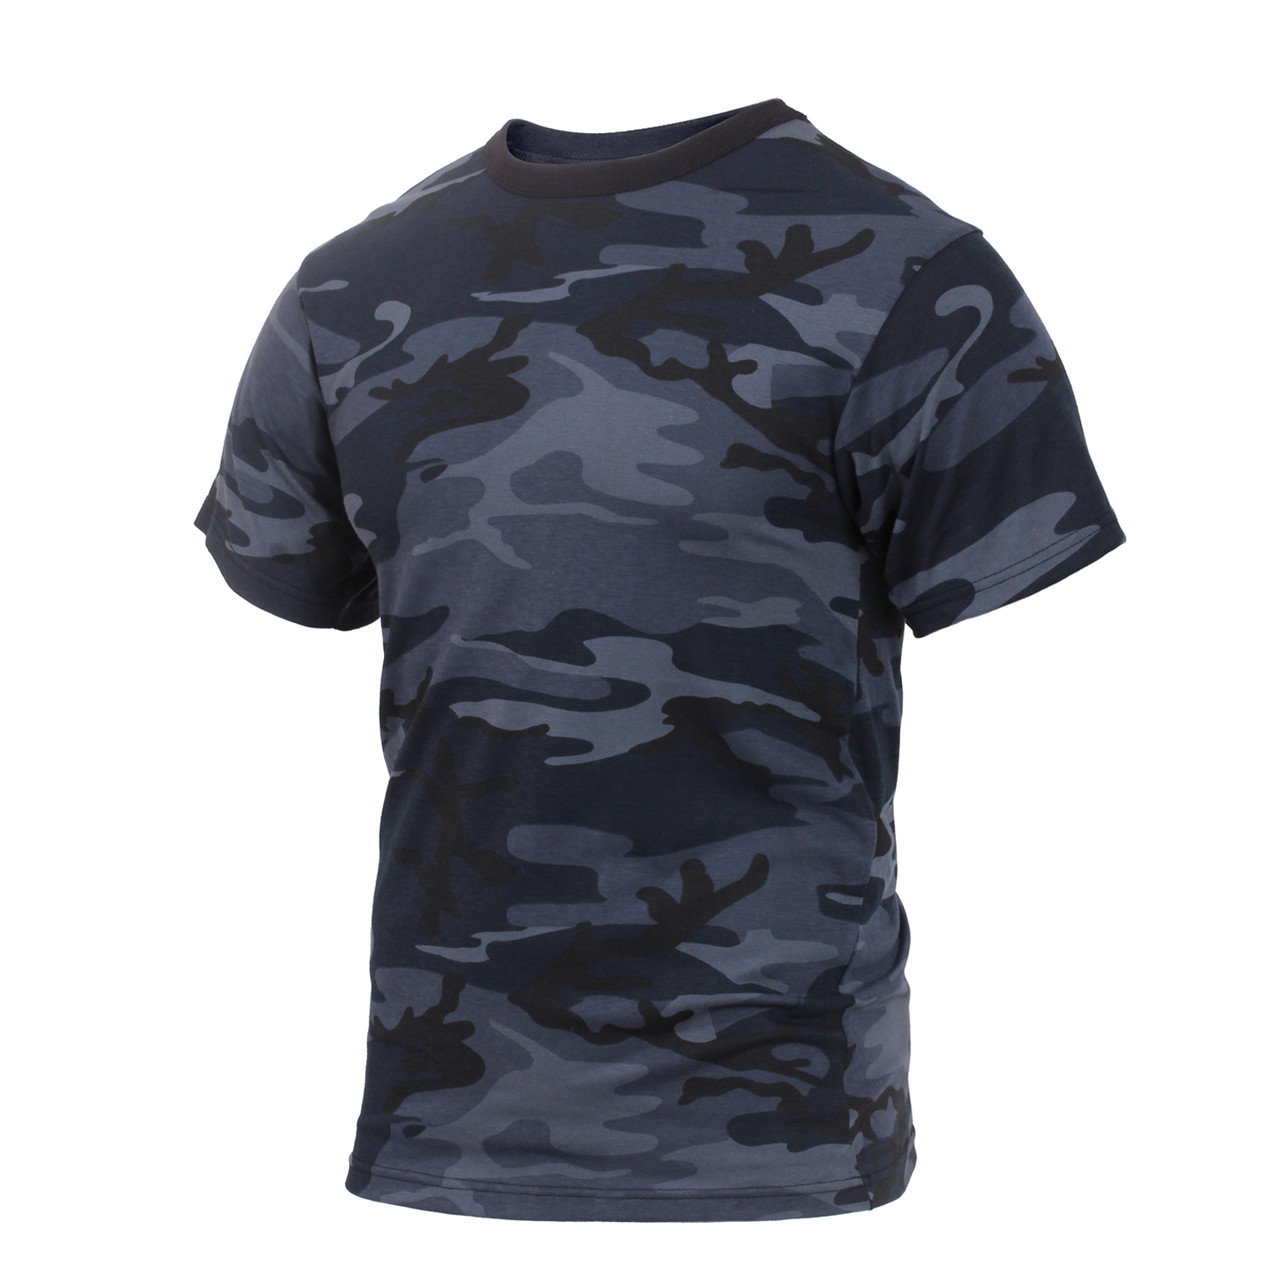 d8f08935c Midnight Blue Camo T Shirt - View. Hover over image to zoom